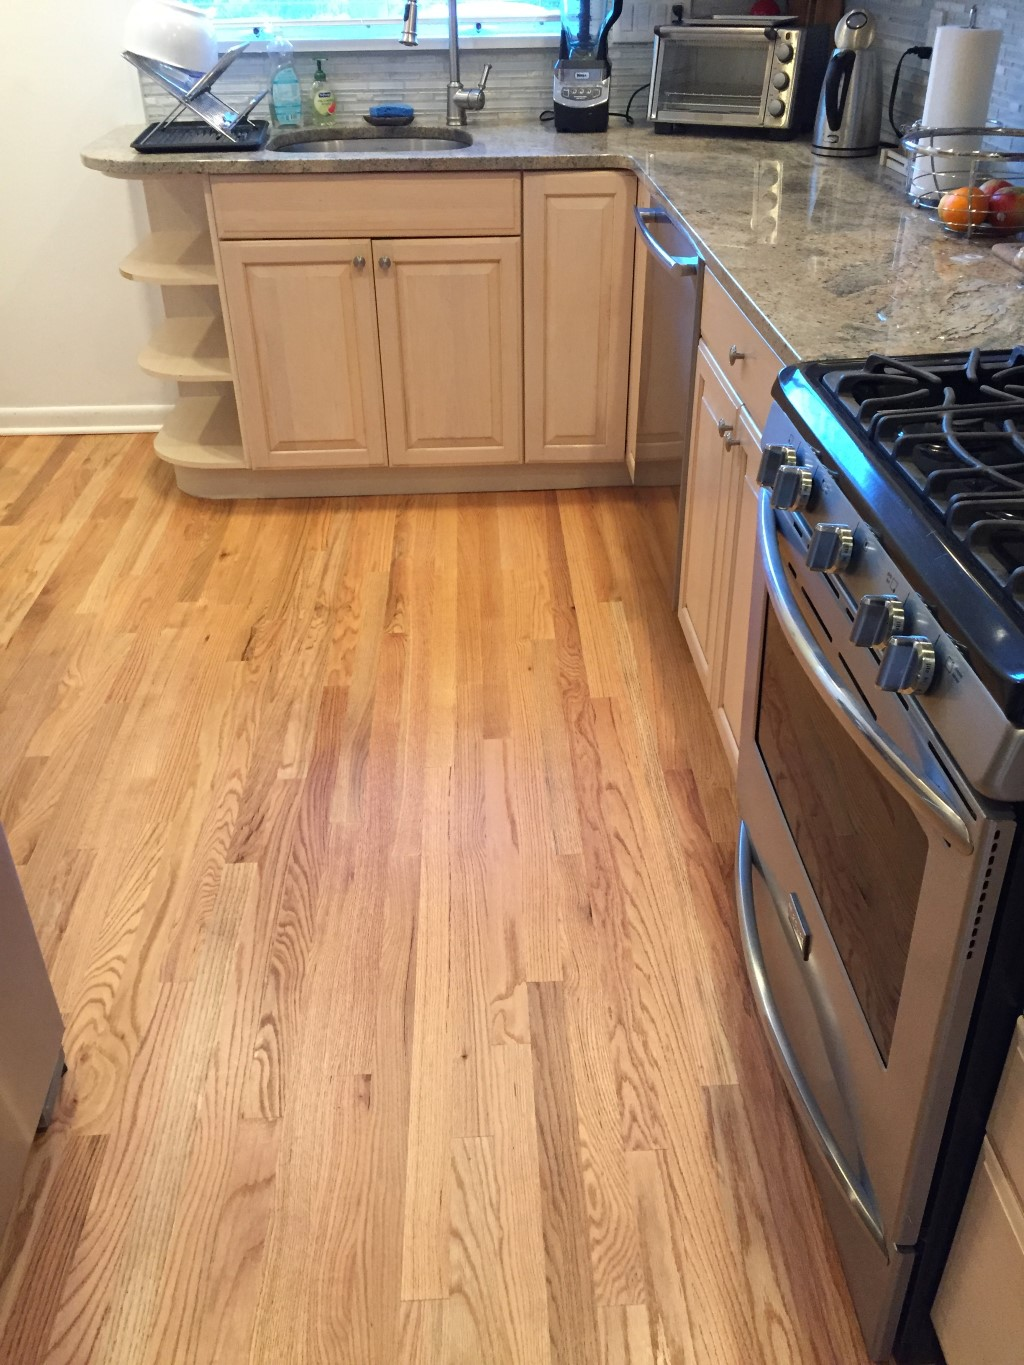 Kitchen Cabinets Red Oak Floors Kitchen Unfinished Red Oak Planks Replace Gray Tiles Floor Town